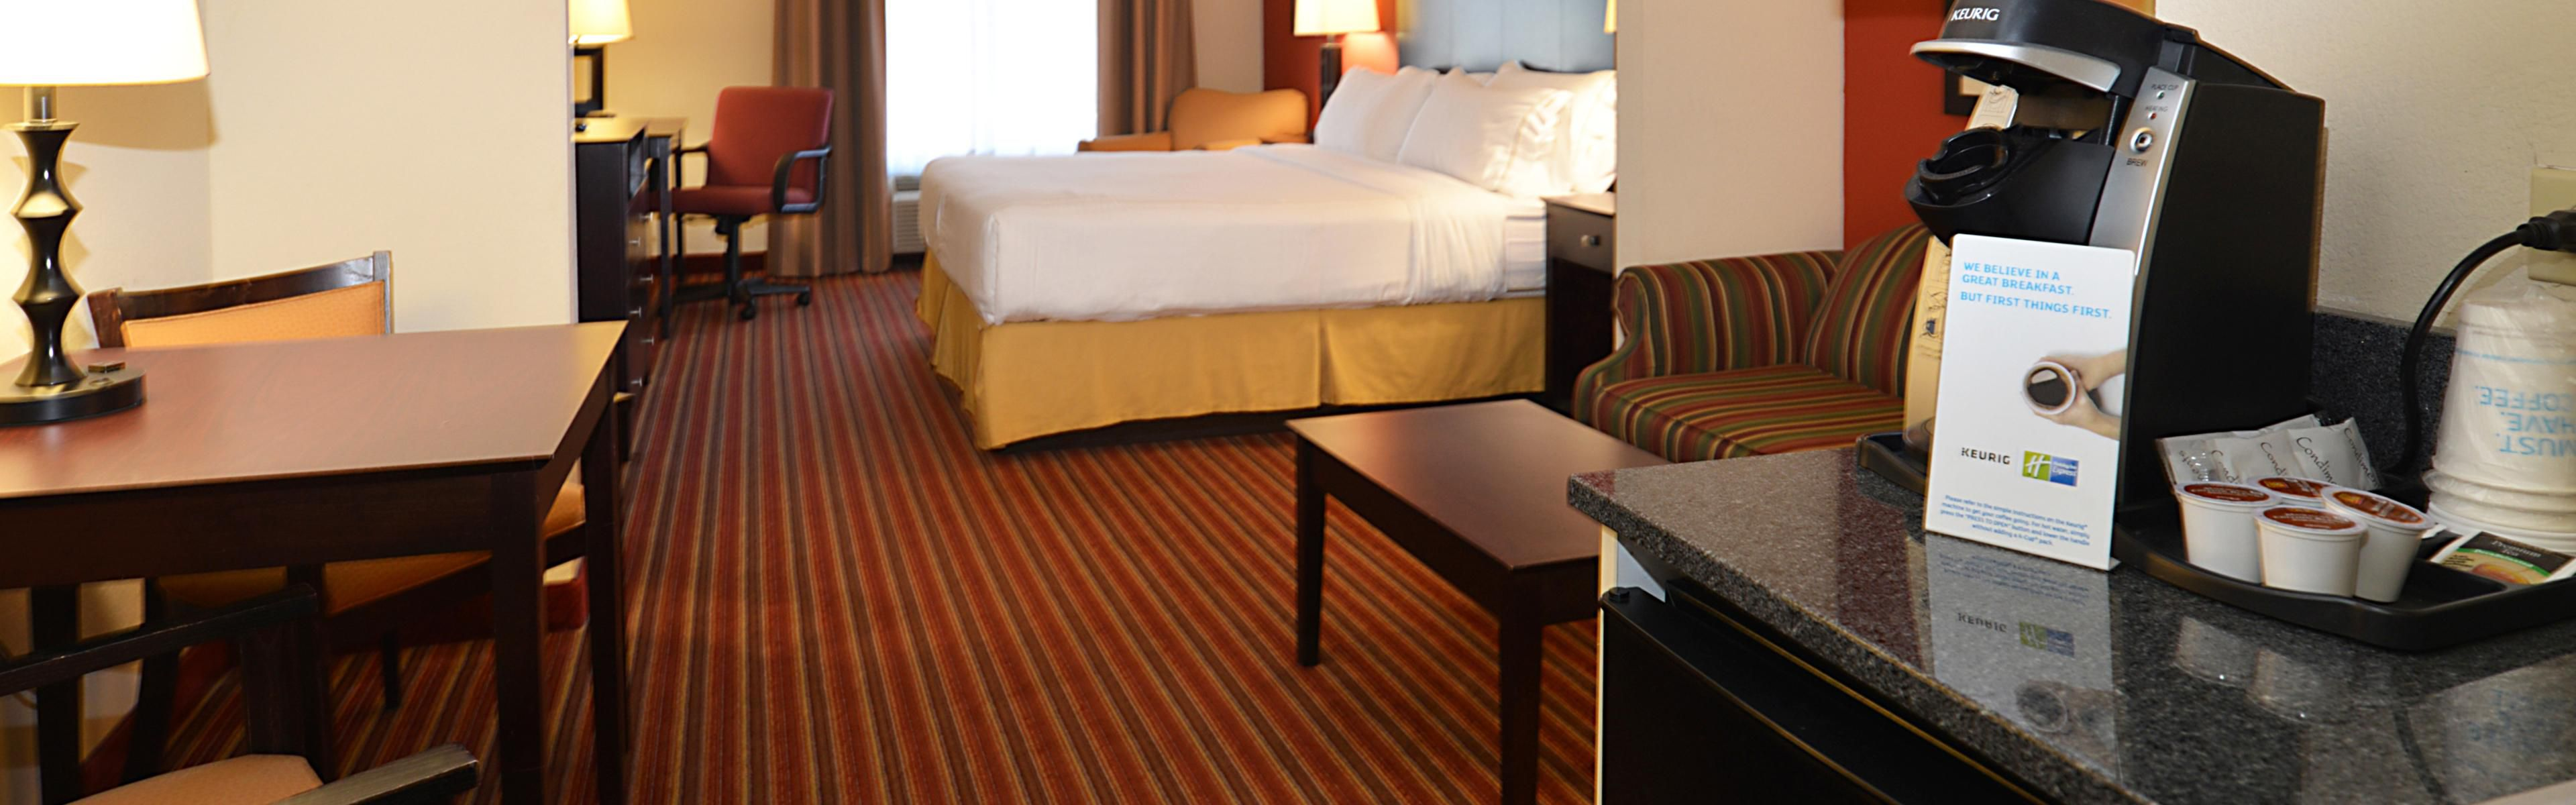 Holiday Inn Express The Villages image 1